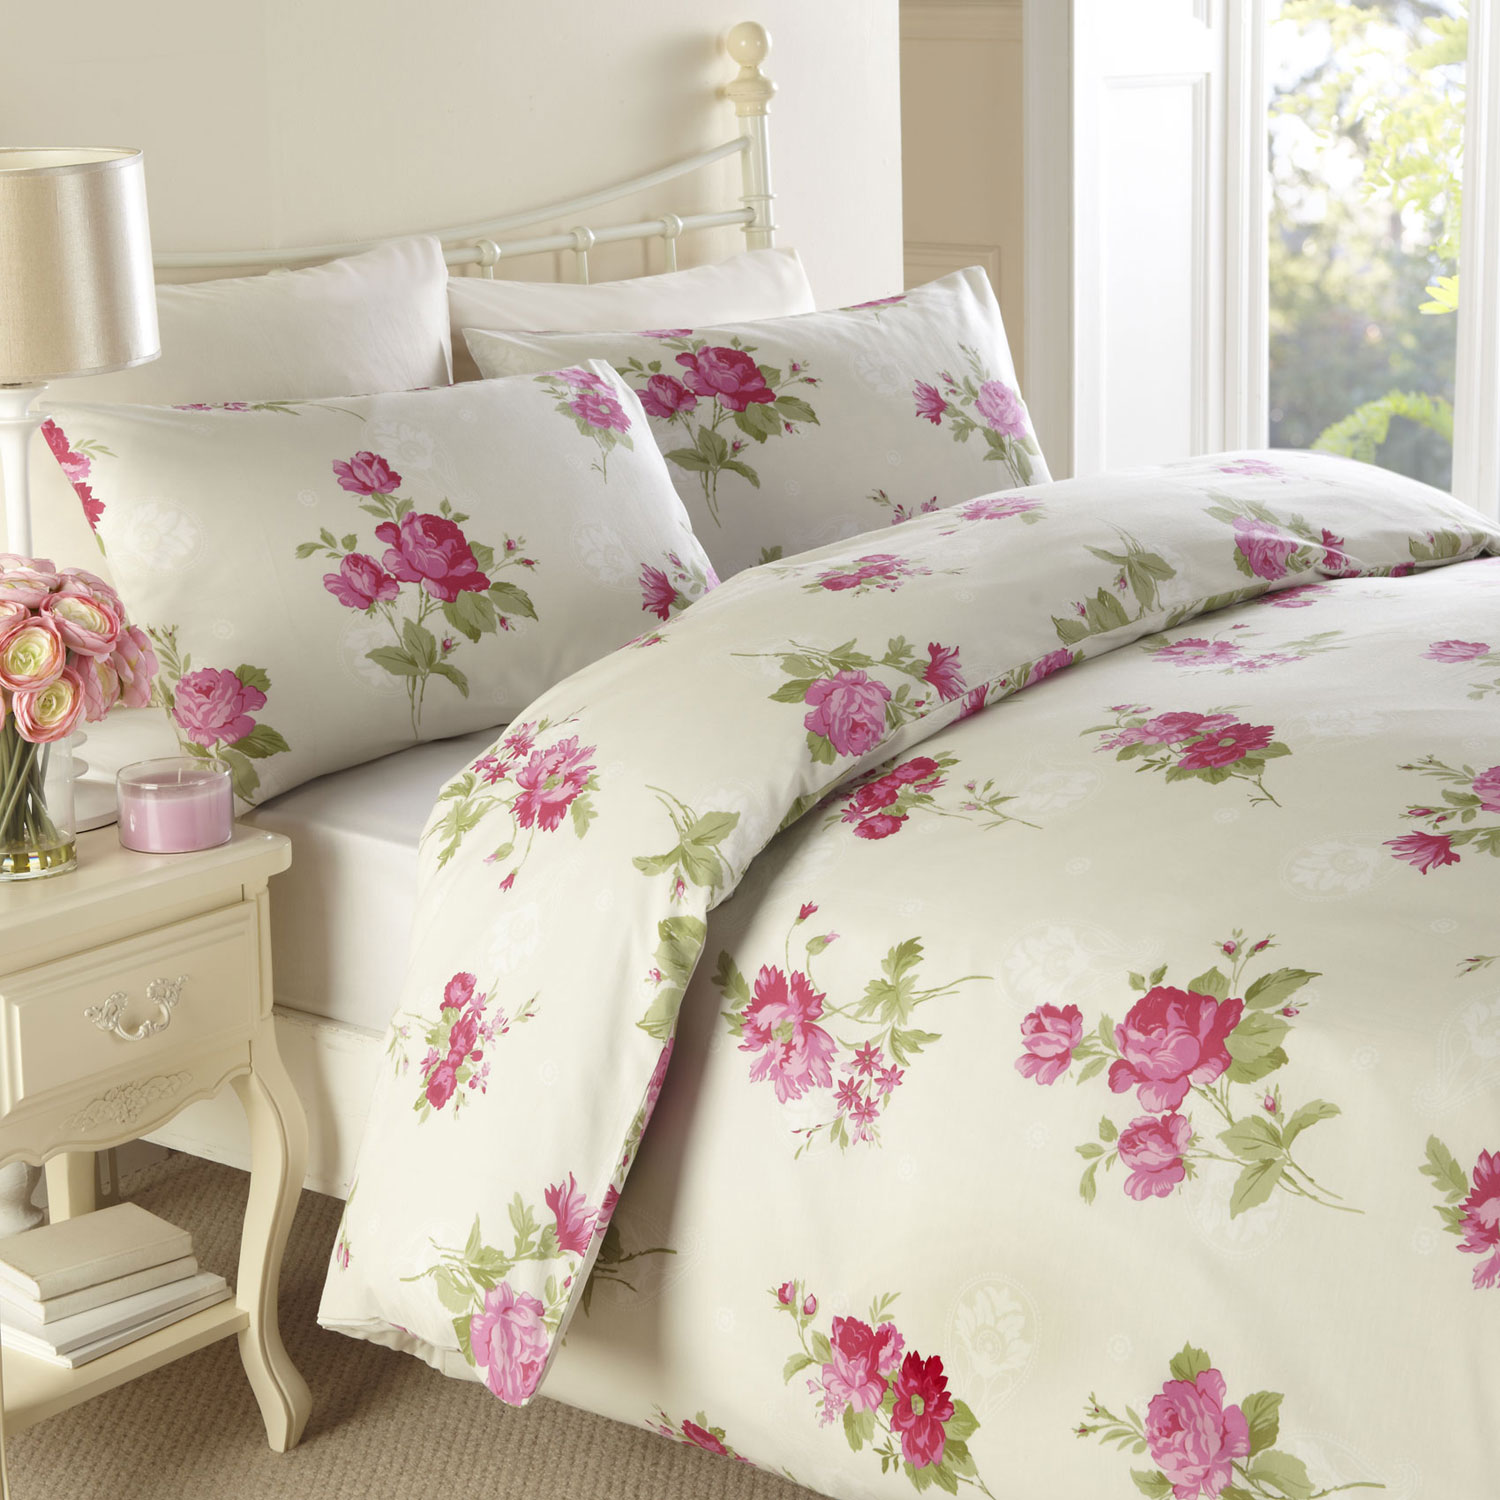 rainbow floral bedding photo - 5